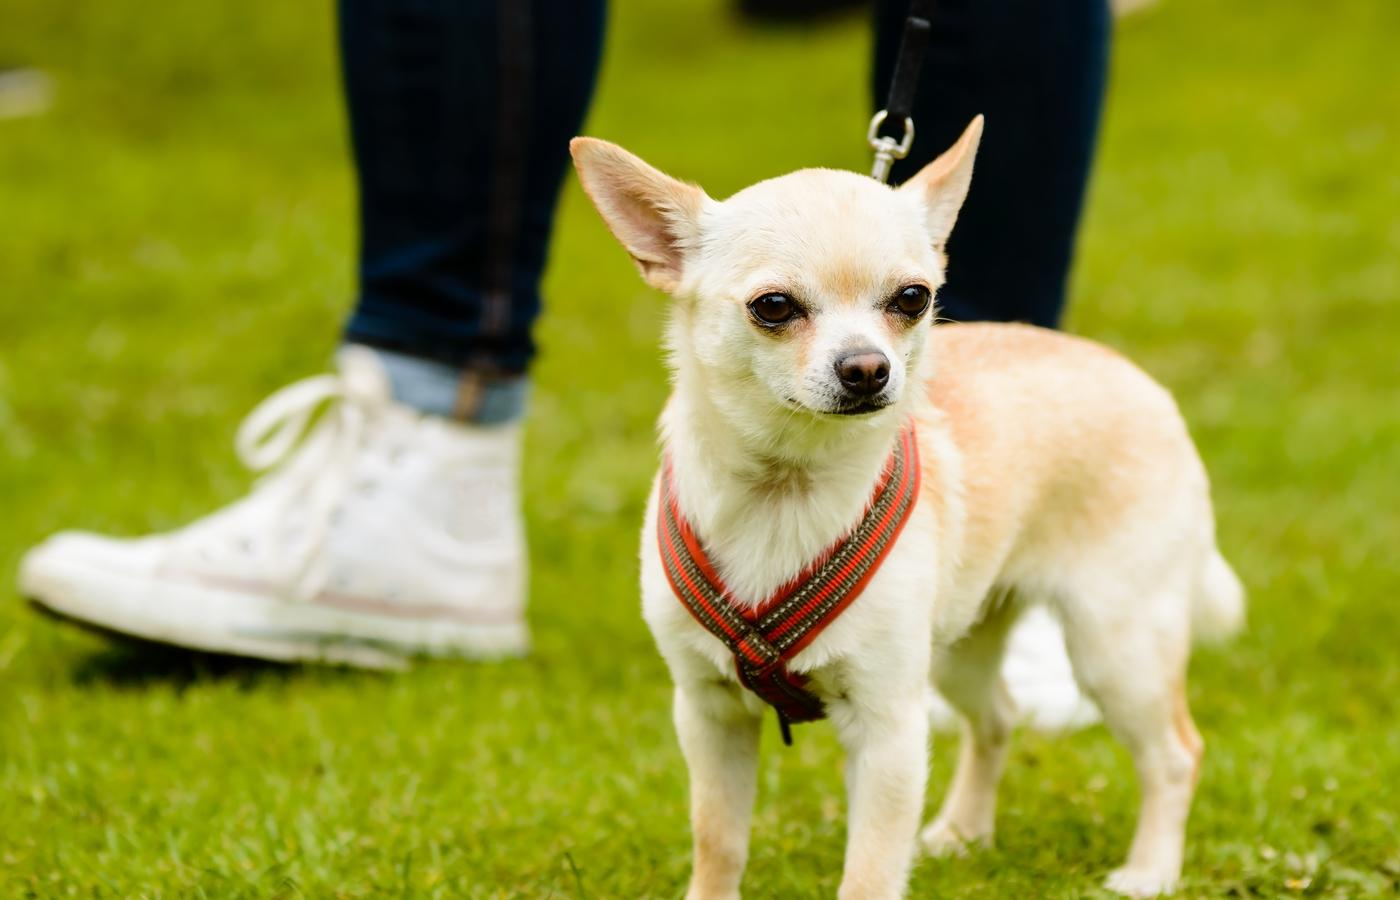 cute chihuahua standing on grass with red harness